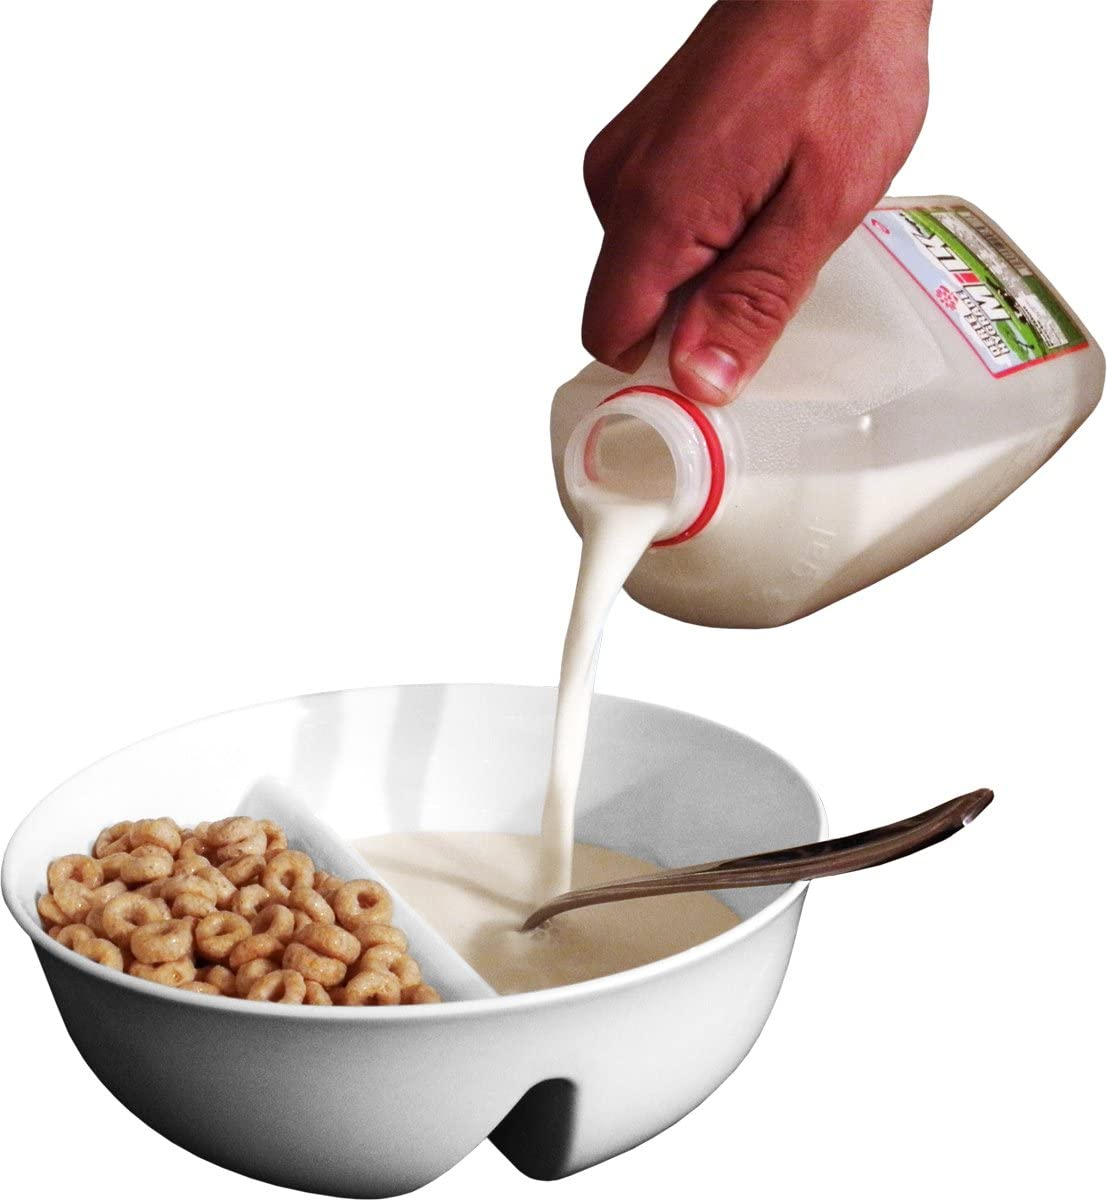 Just Crunch Anti-Soggy Cereal Bowl - Keeps Cereal Fresh & Crunchy | BPA Free | Microwave Safe | Ice Cream & Topping, Yogurt & Berries, Fries & Ketchup and More – White